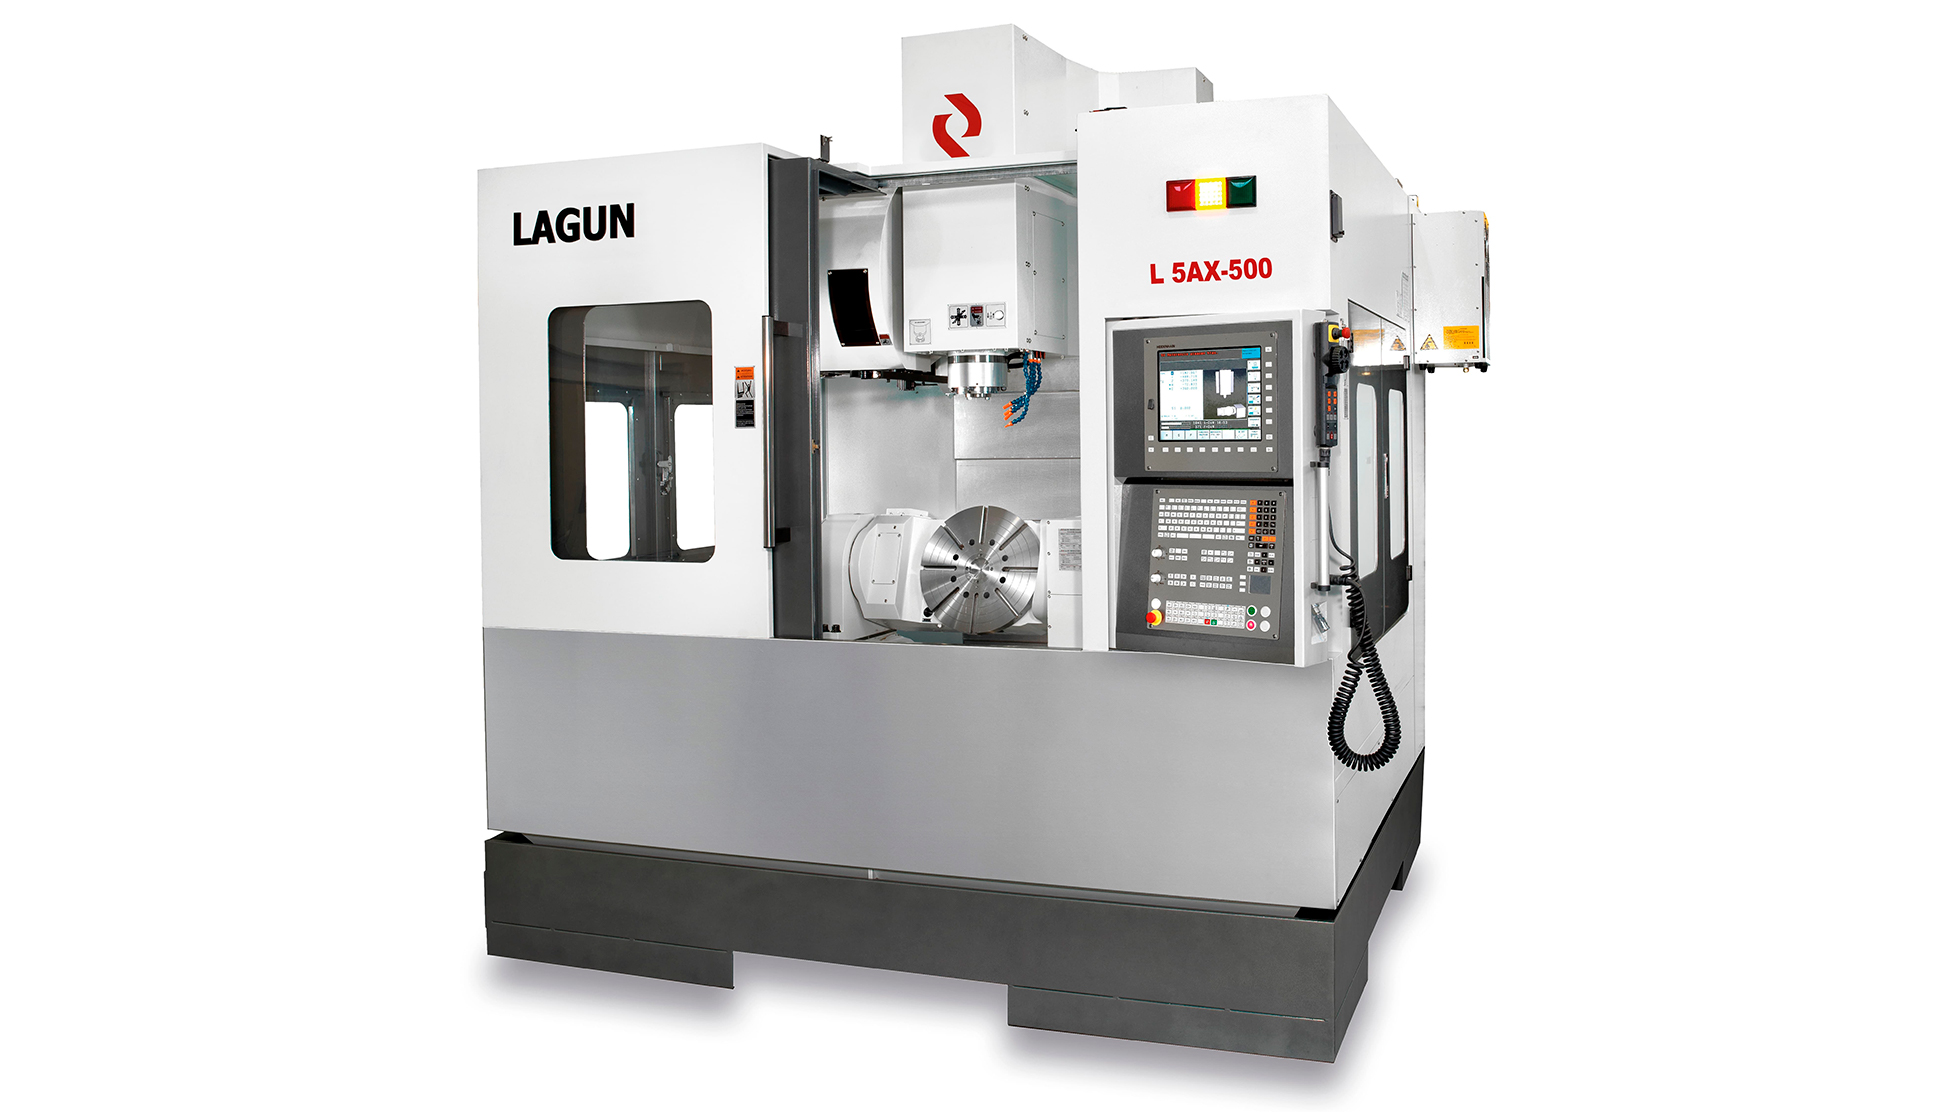 High speed vertical machining centres 5 Axes Simultaneous Machining Centre: L 5AX-500 model